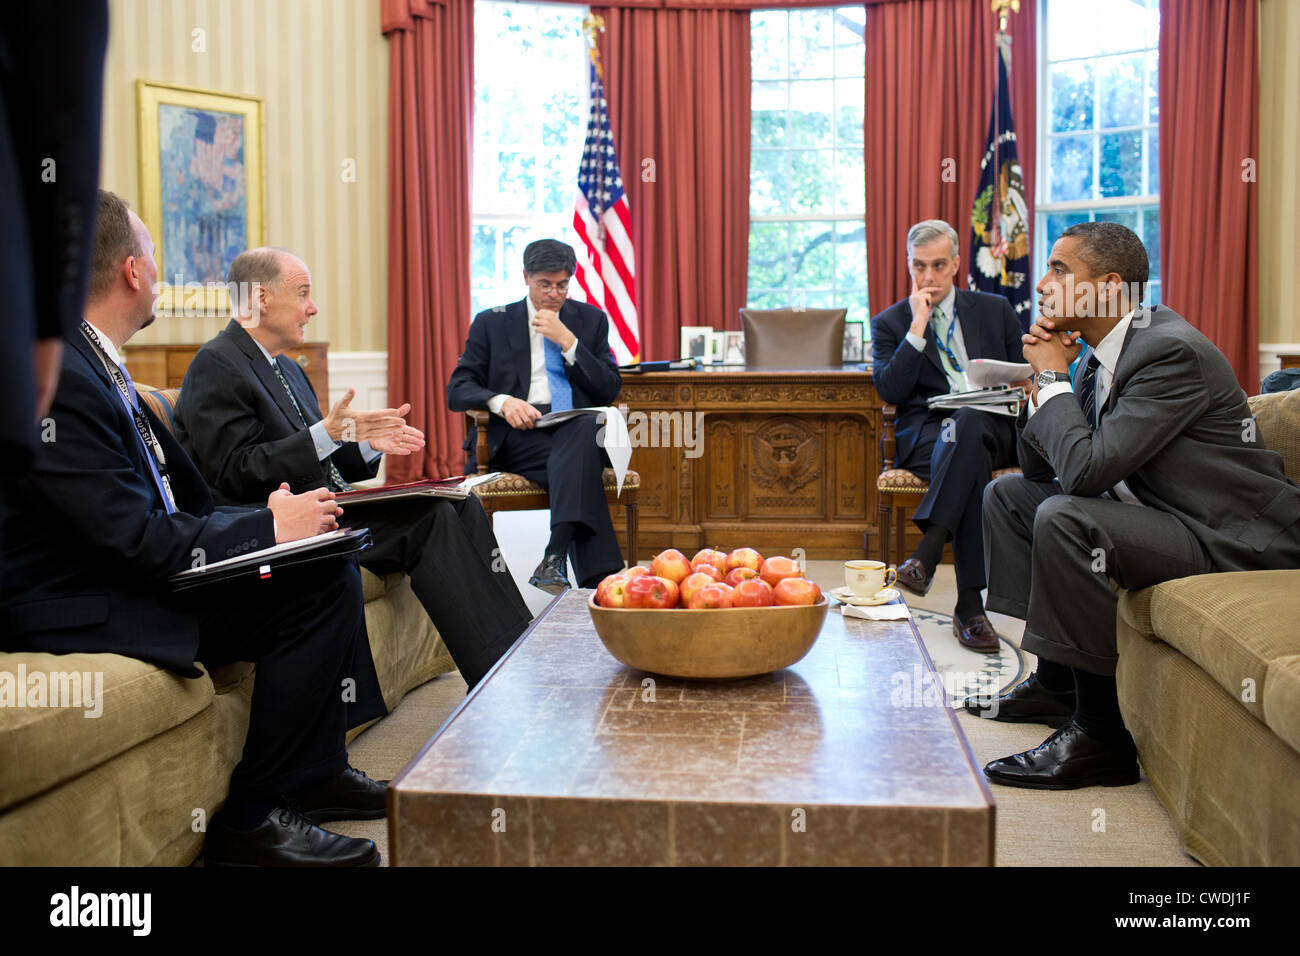 President Barack Obama meets with senior advisors in the Oval Office before a phone call with President Vladimir Stock Photo